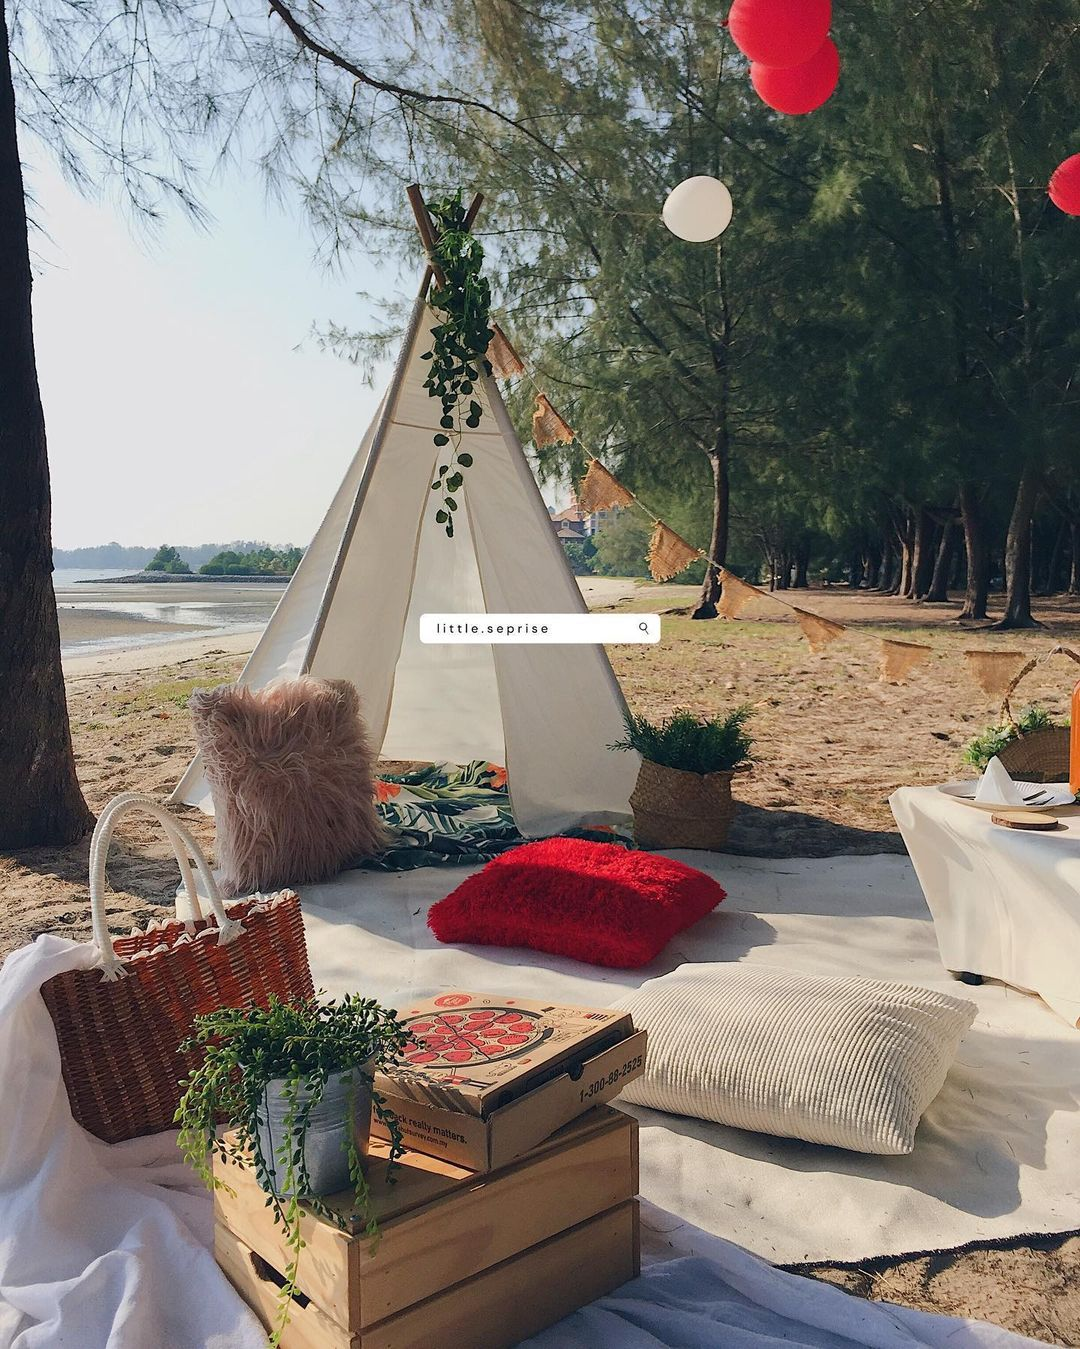 A cute picnic rental service with a tepee on the beach